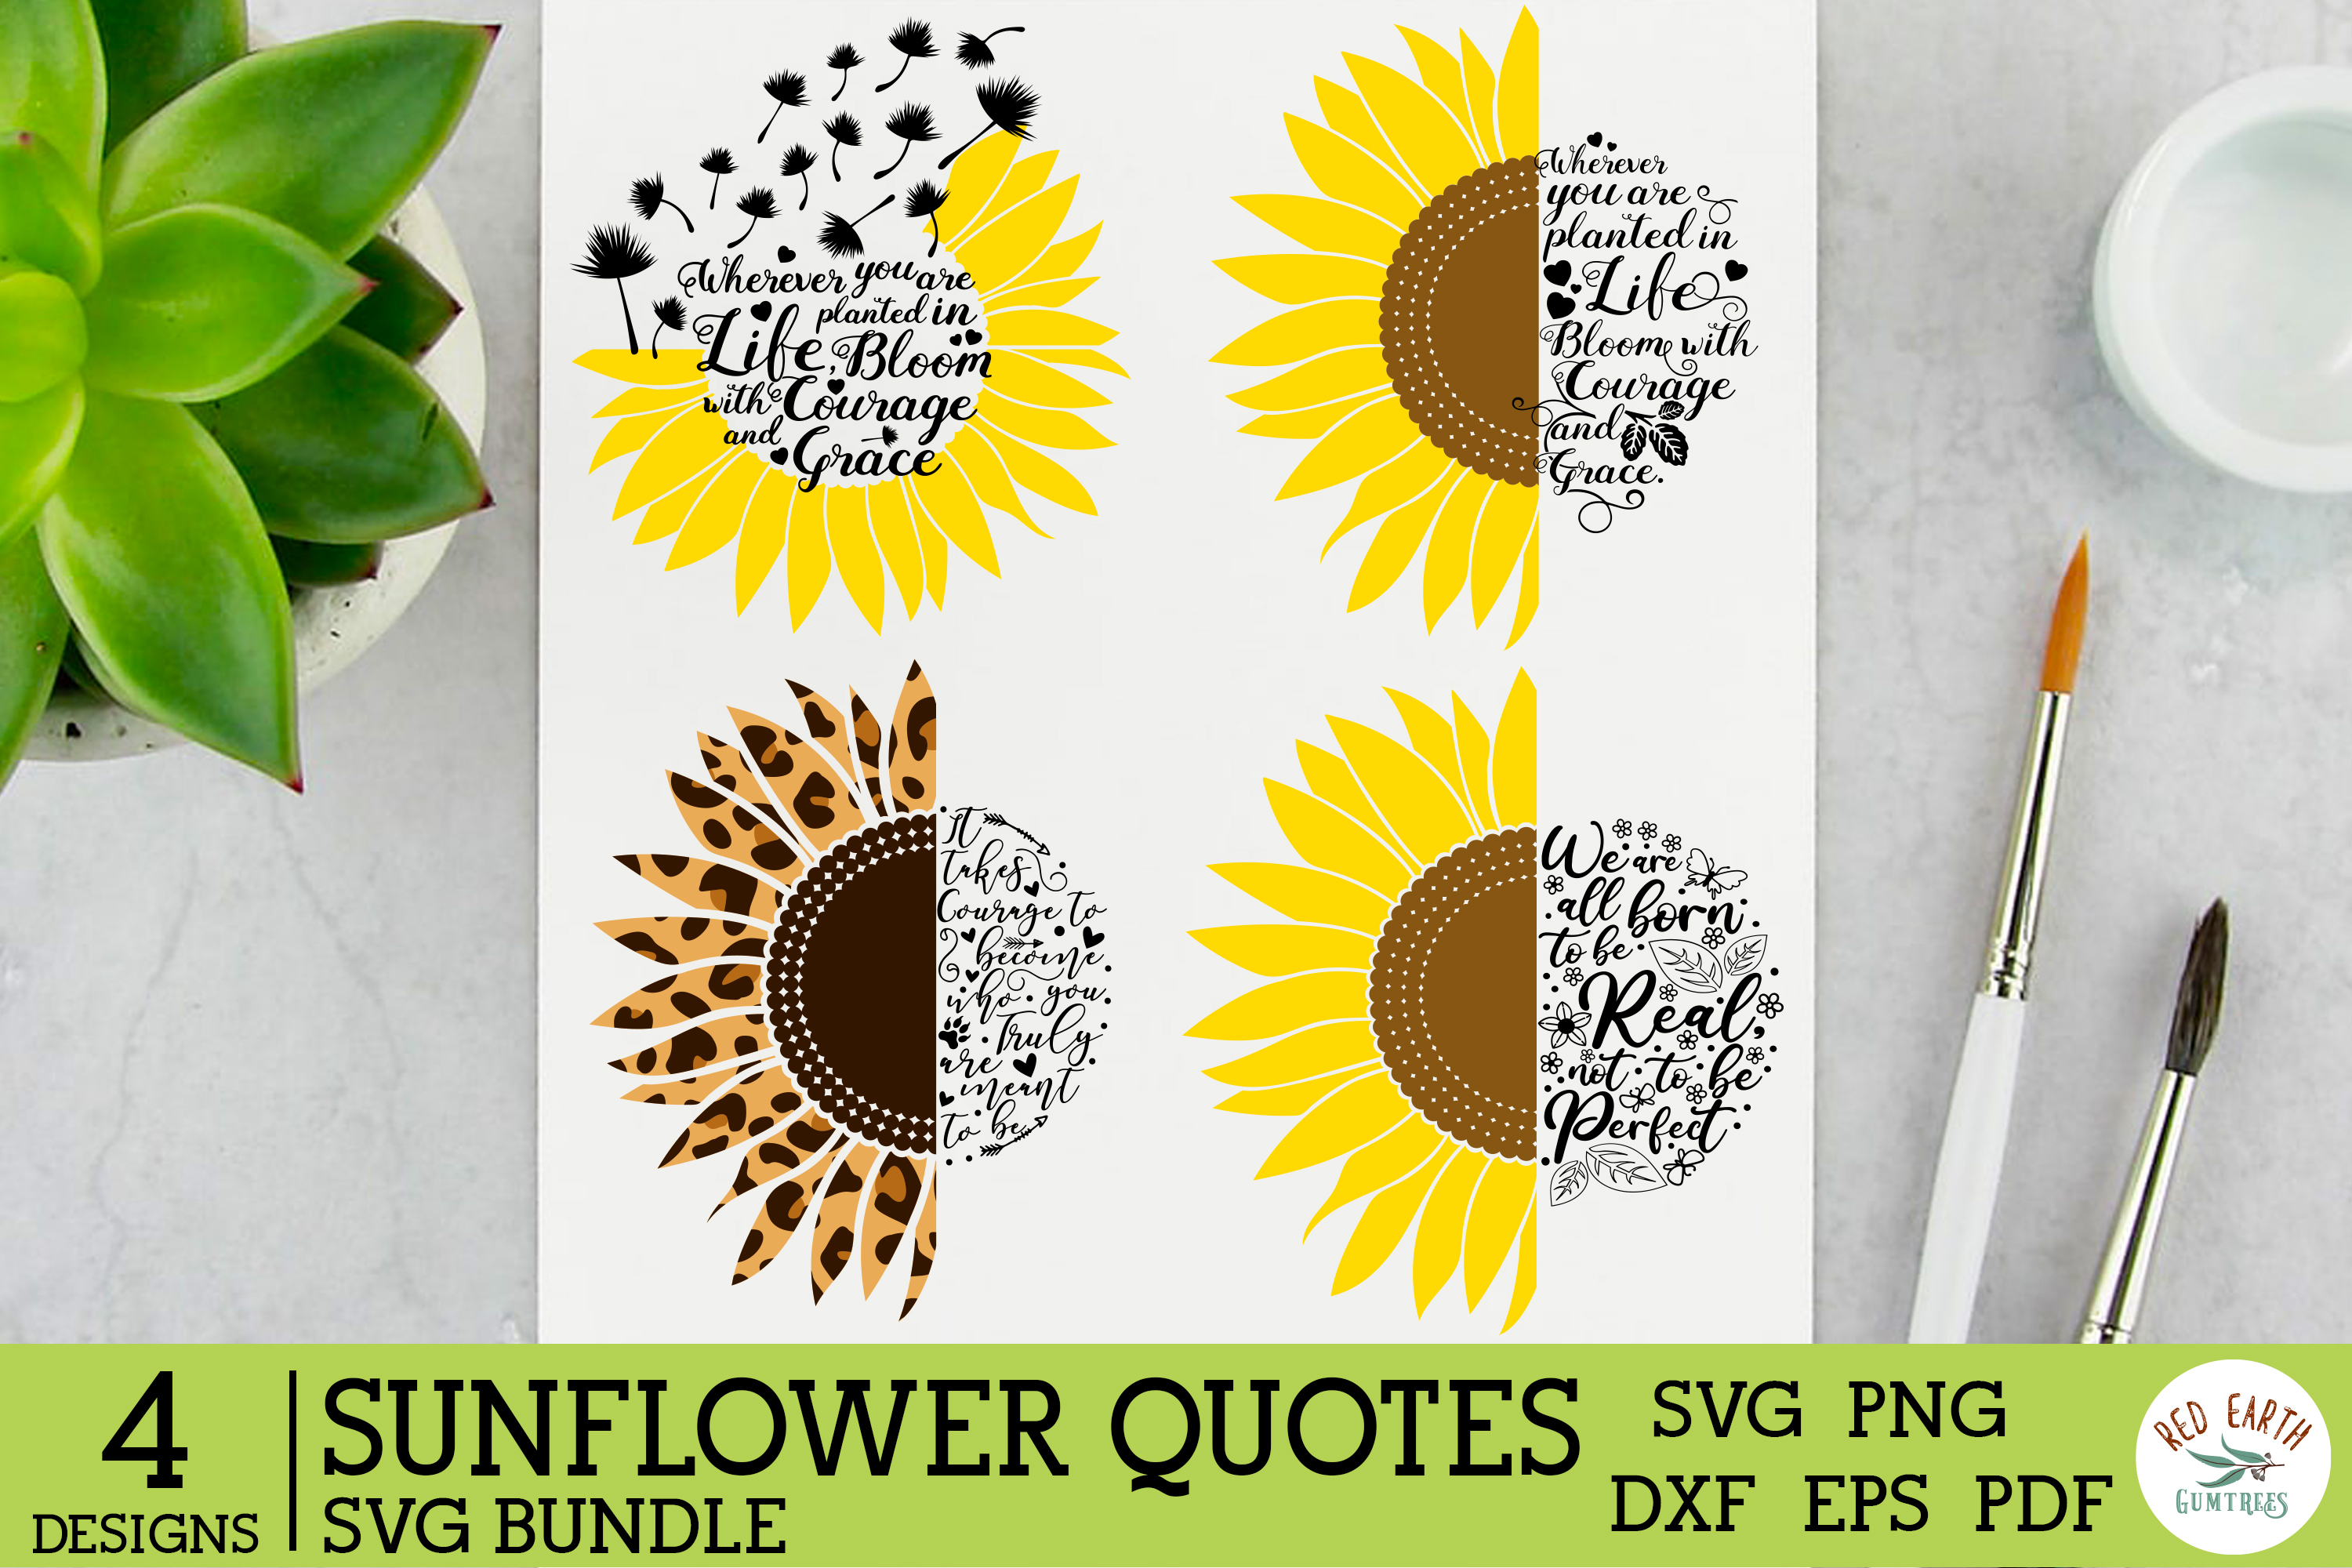 Sunflower Quote Saying Bundle SVG File